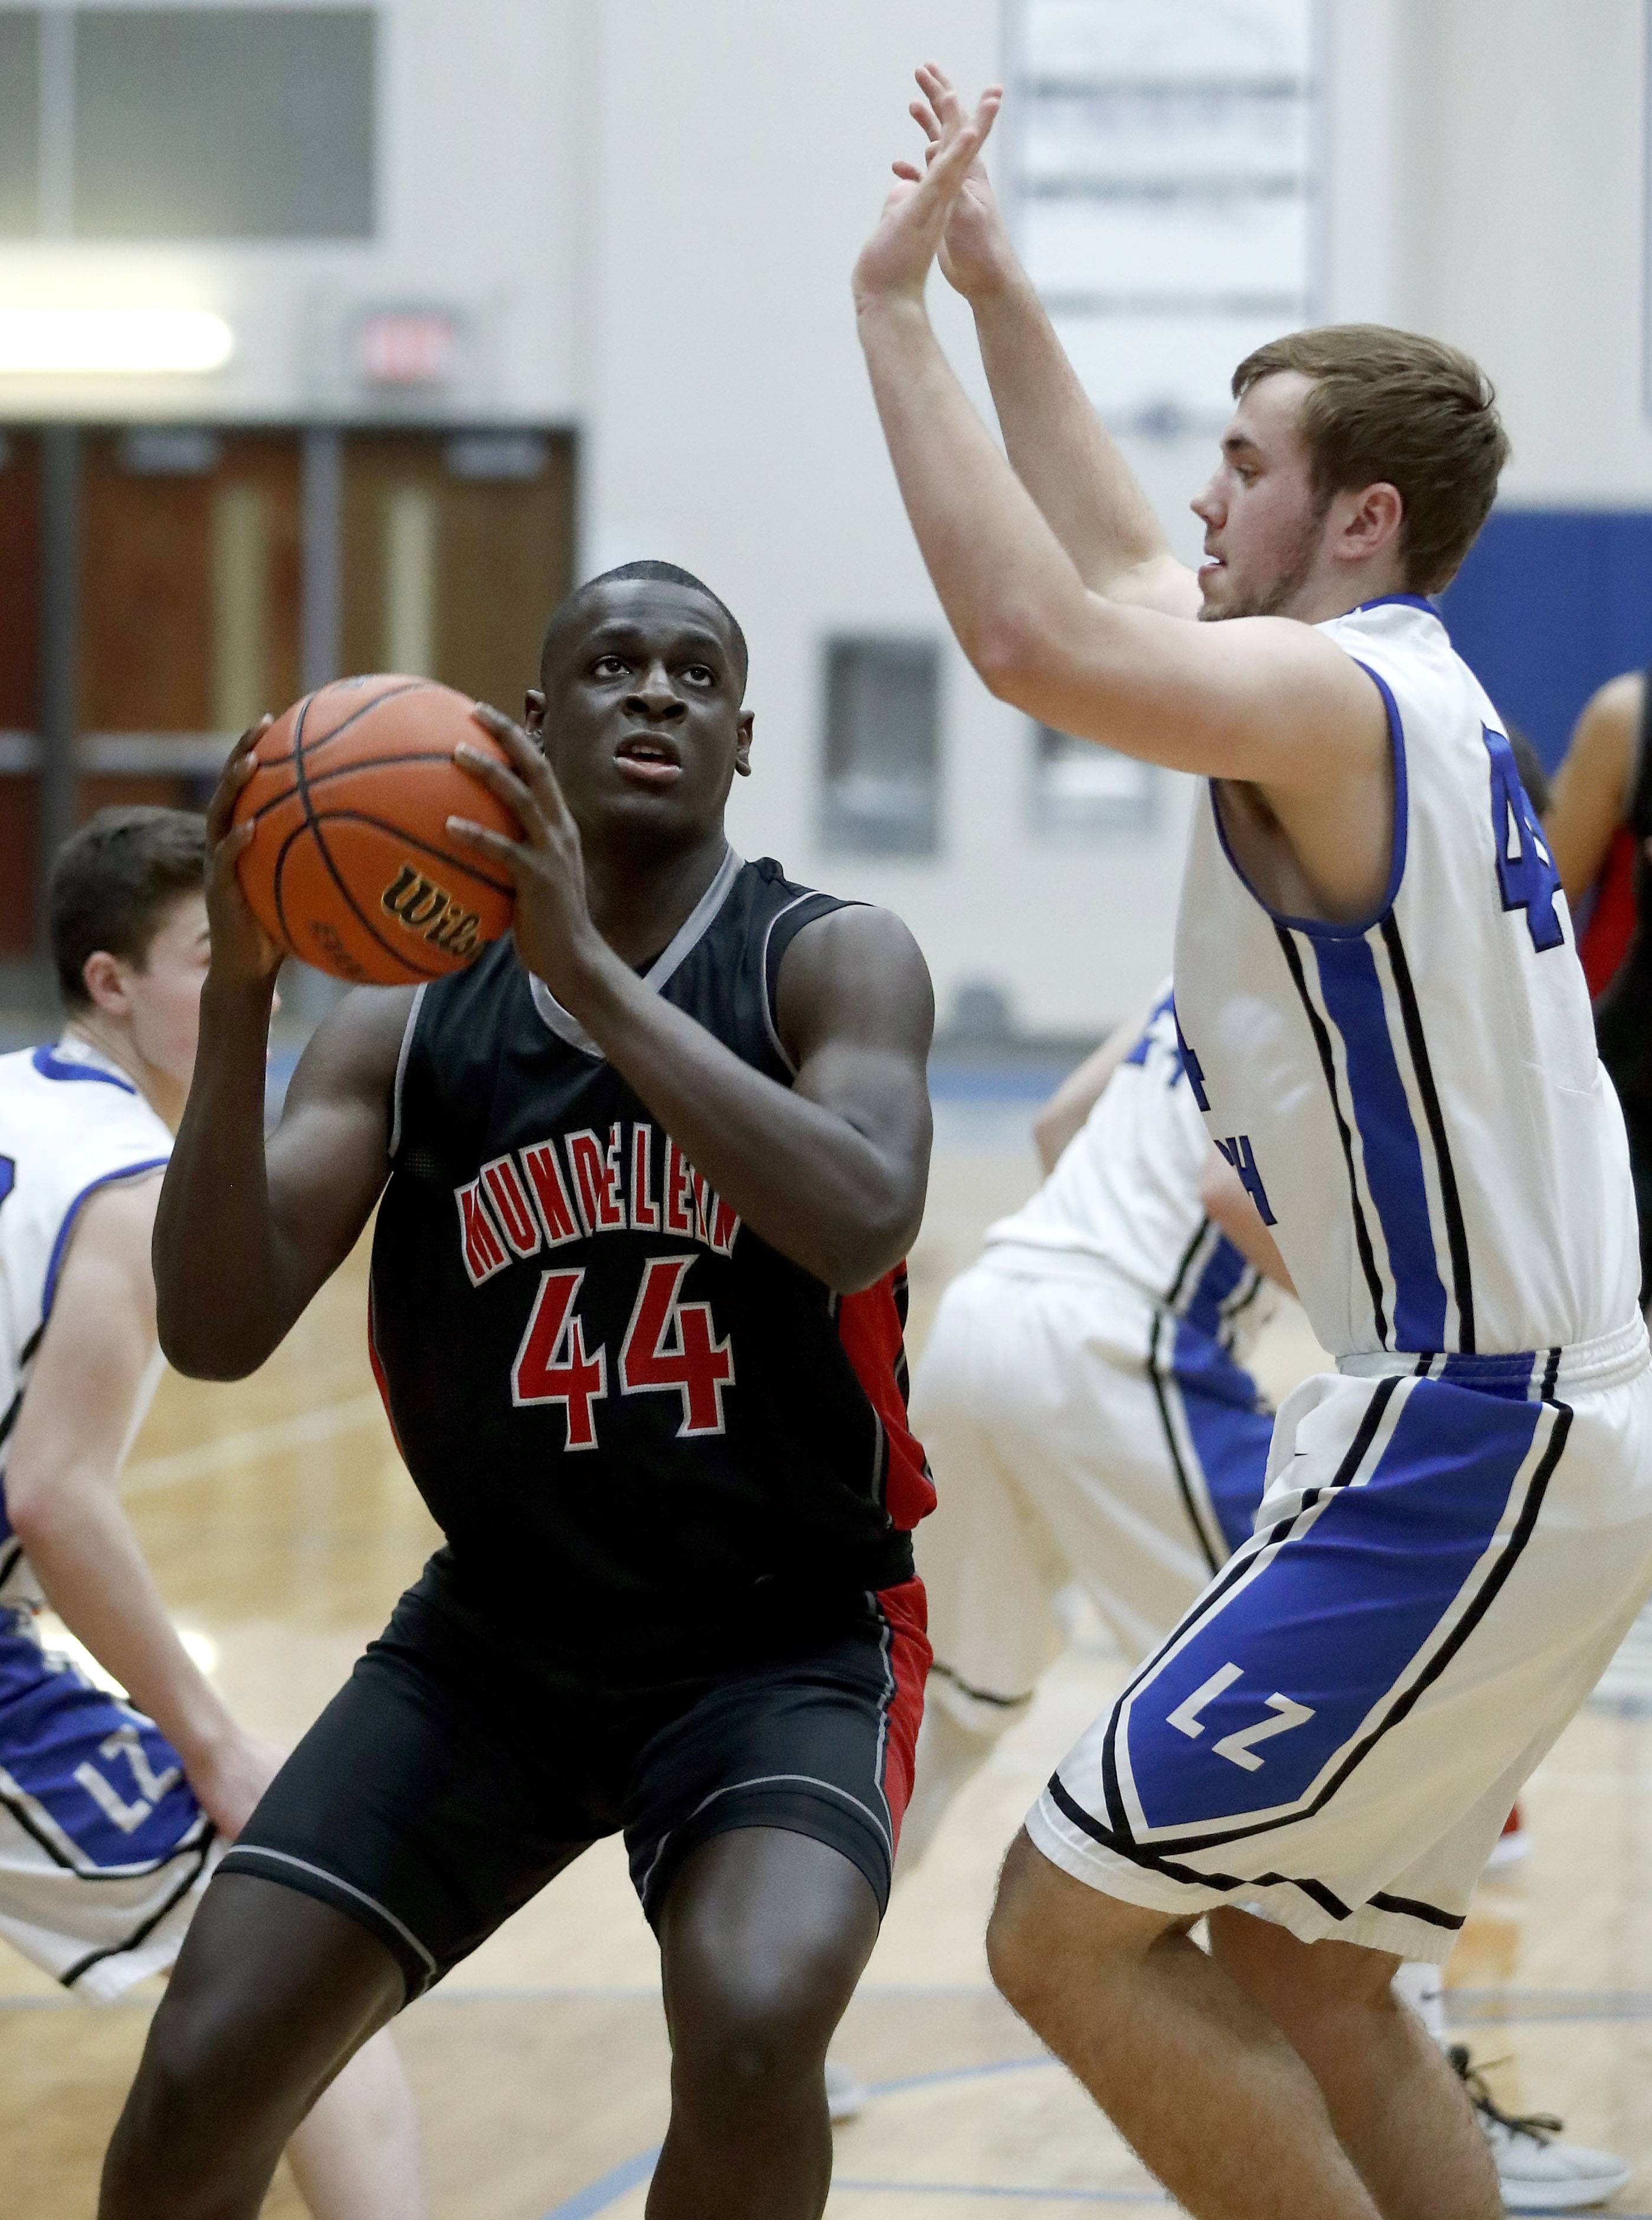 Mundelein's Scottie Ebube, left, drives on Lake Zurich's Nick Marcinkiewicz during their game Tuesday night in Lake Zurich,